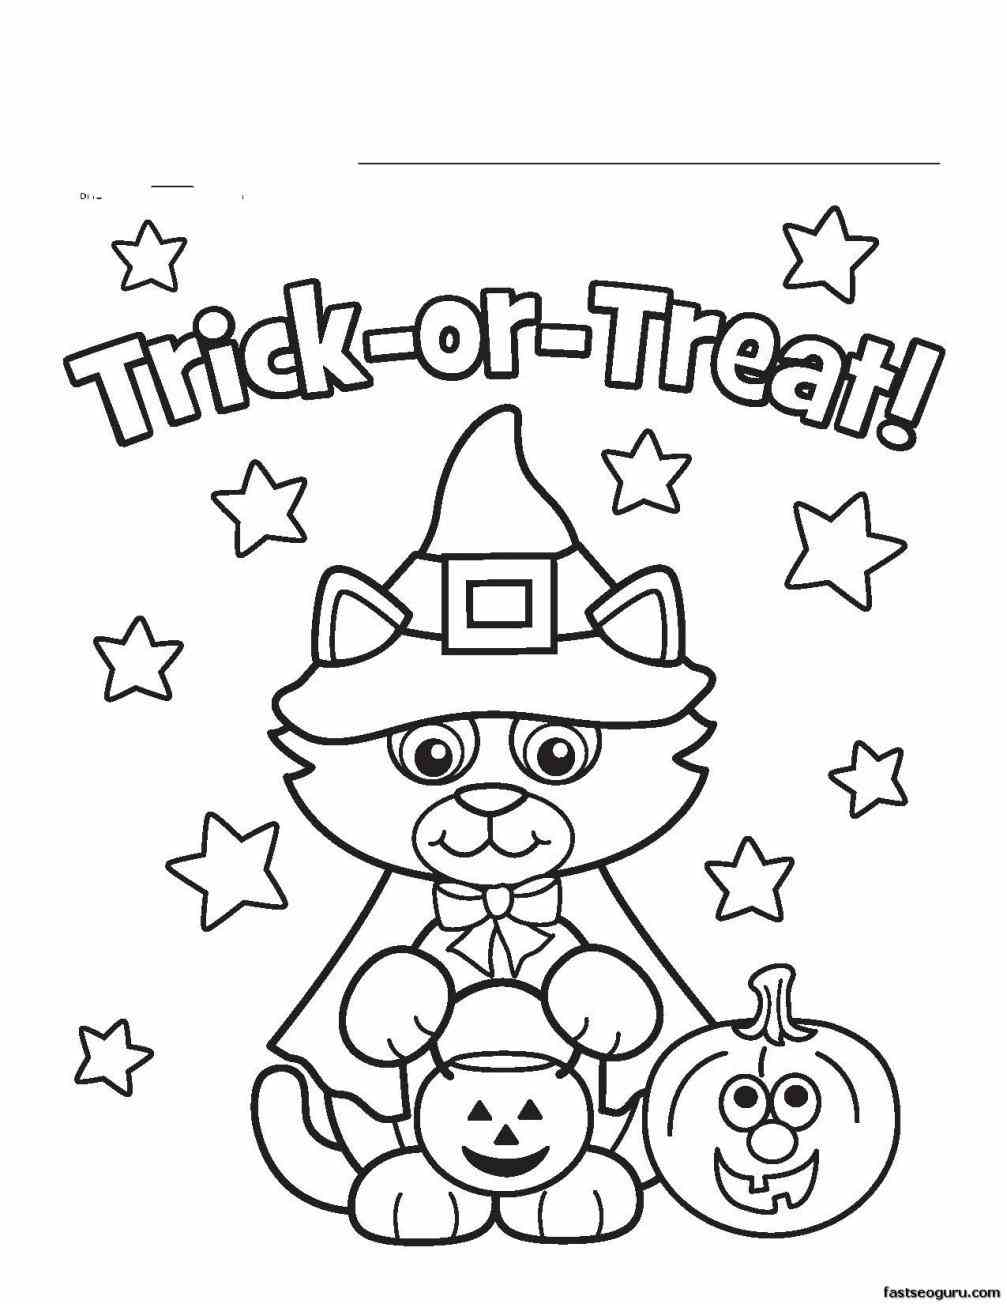 Halloween 2017 Trick Or Treat Coloring Pages Printable For